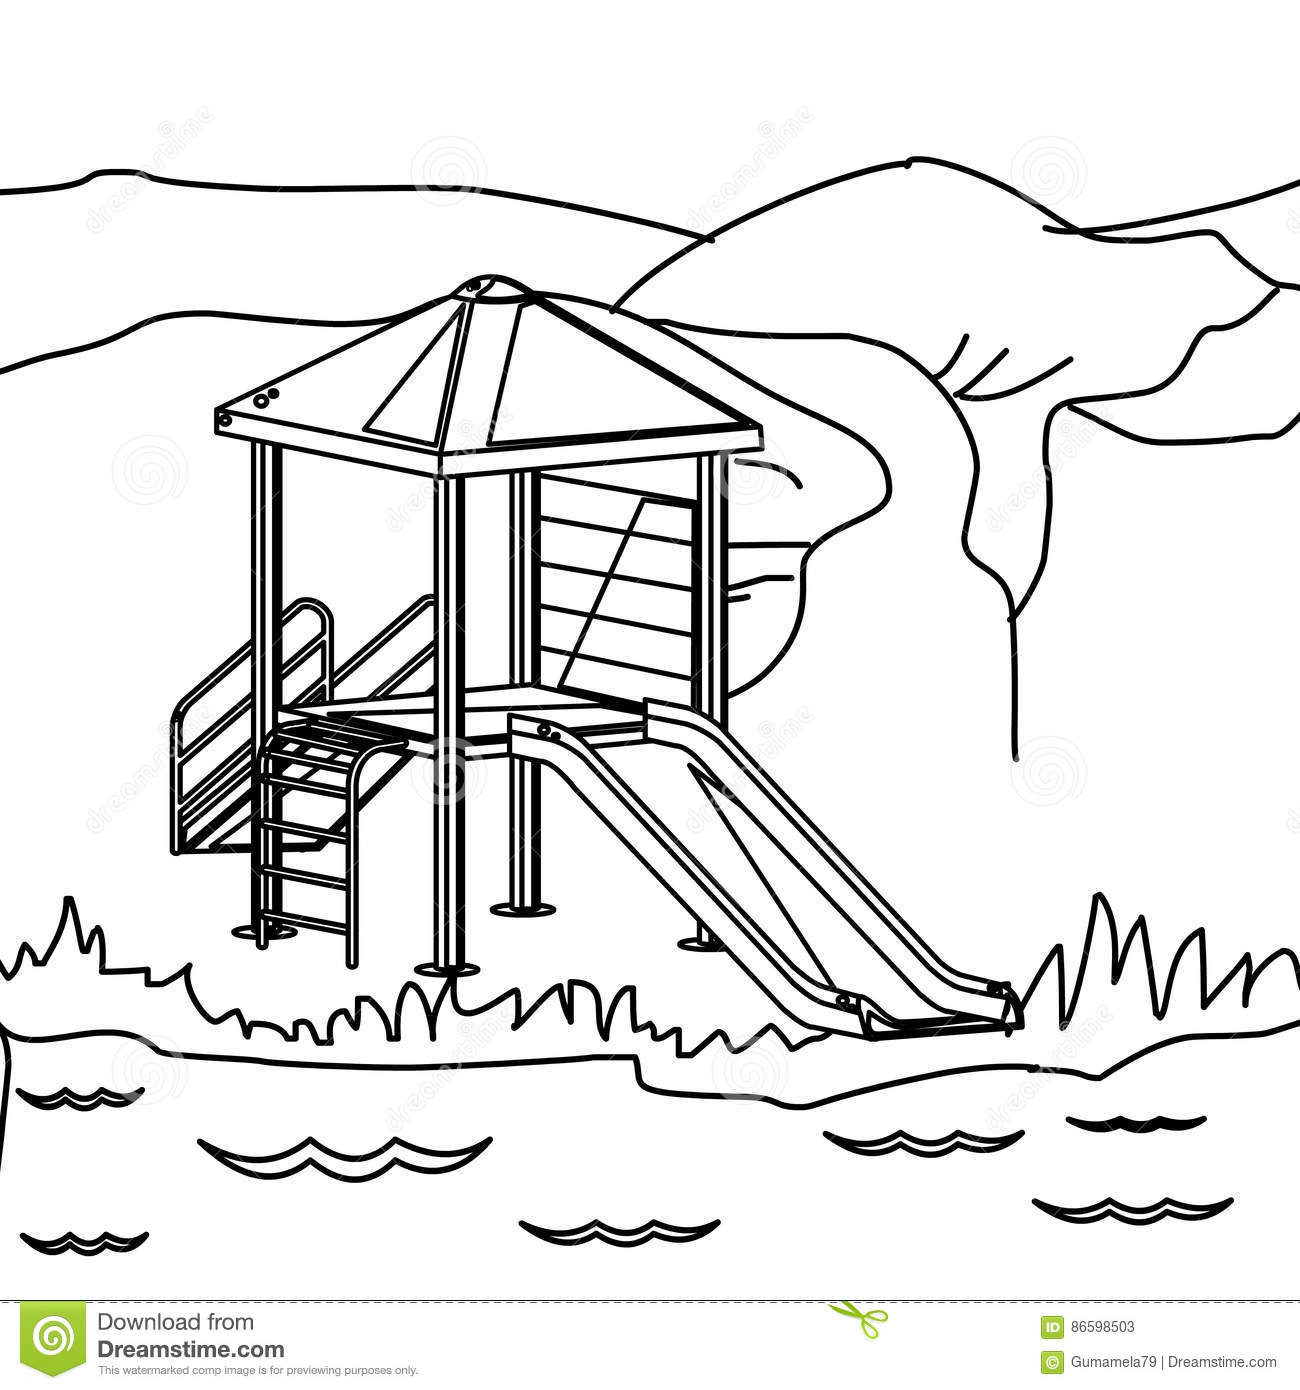 Coloring book page of a playground - Playground Coloring Page